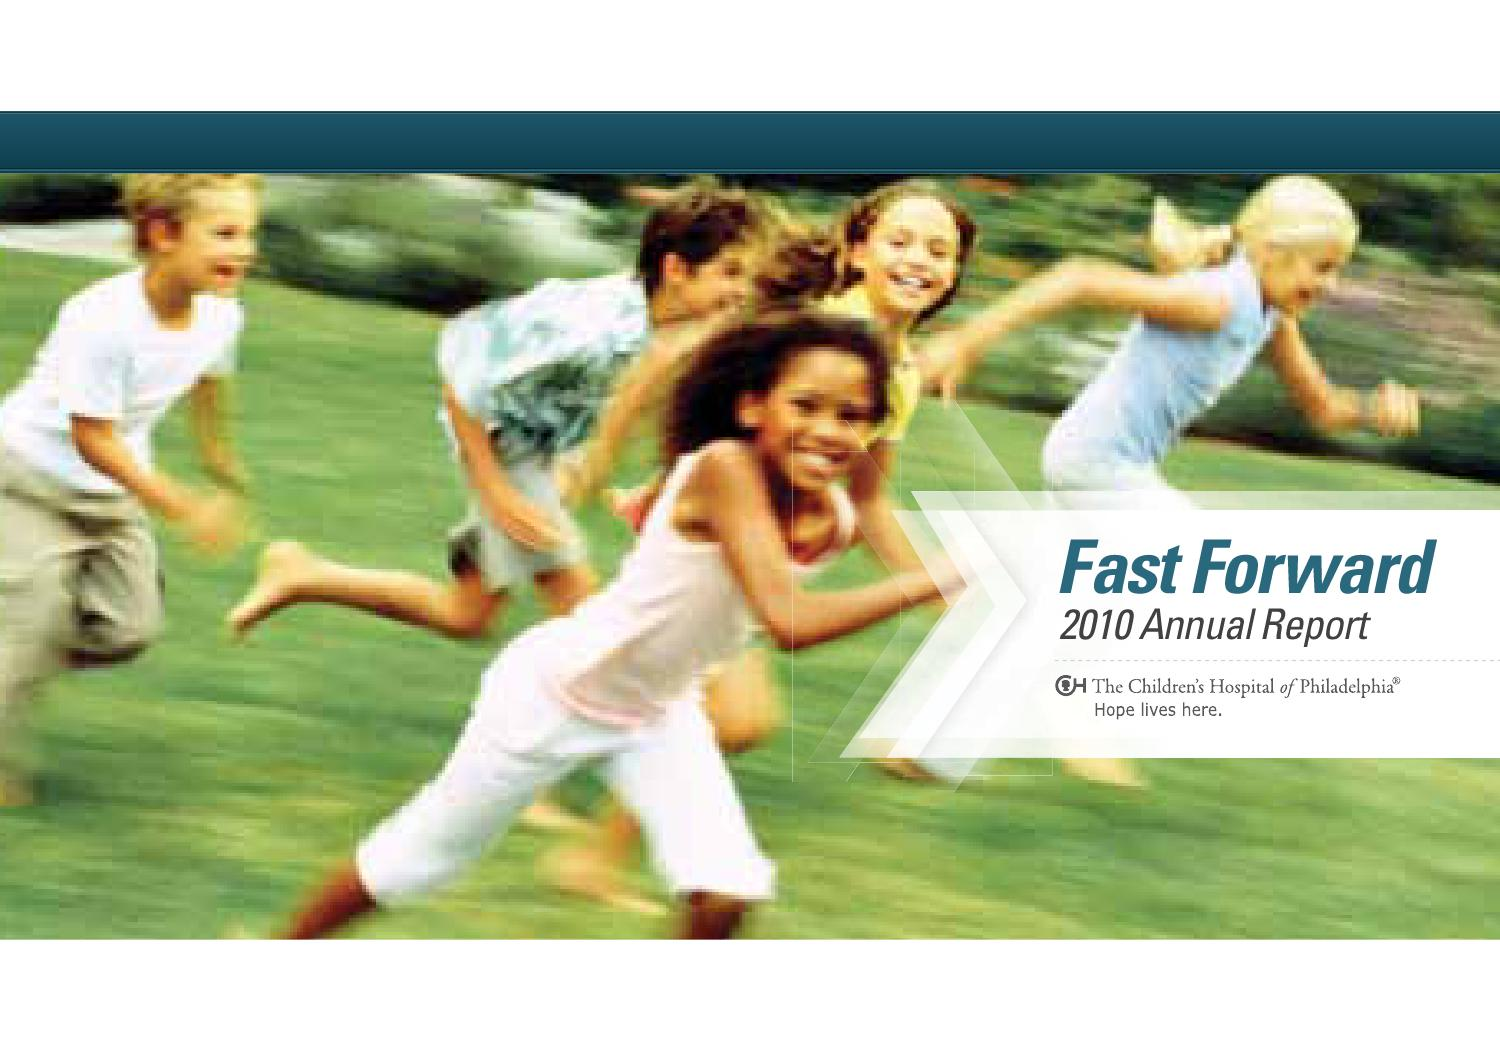 2010 Annual Report by The Children's Hospital of